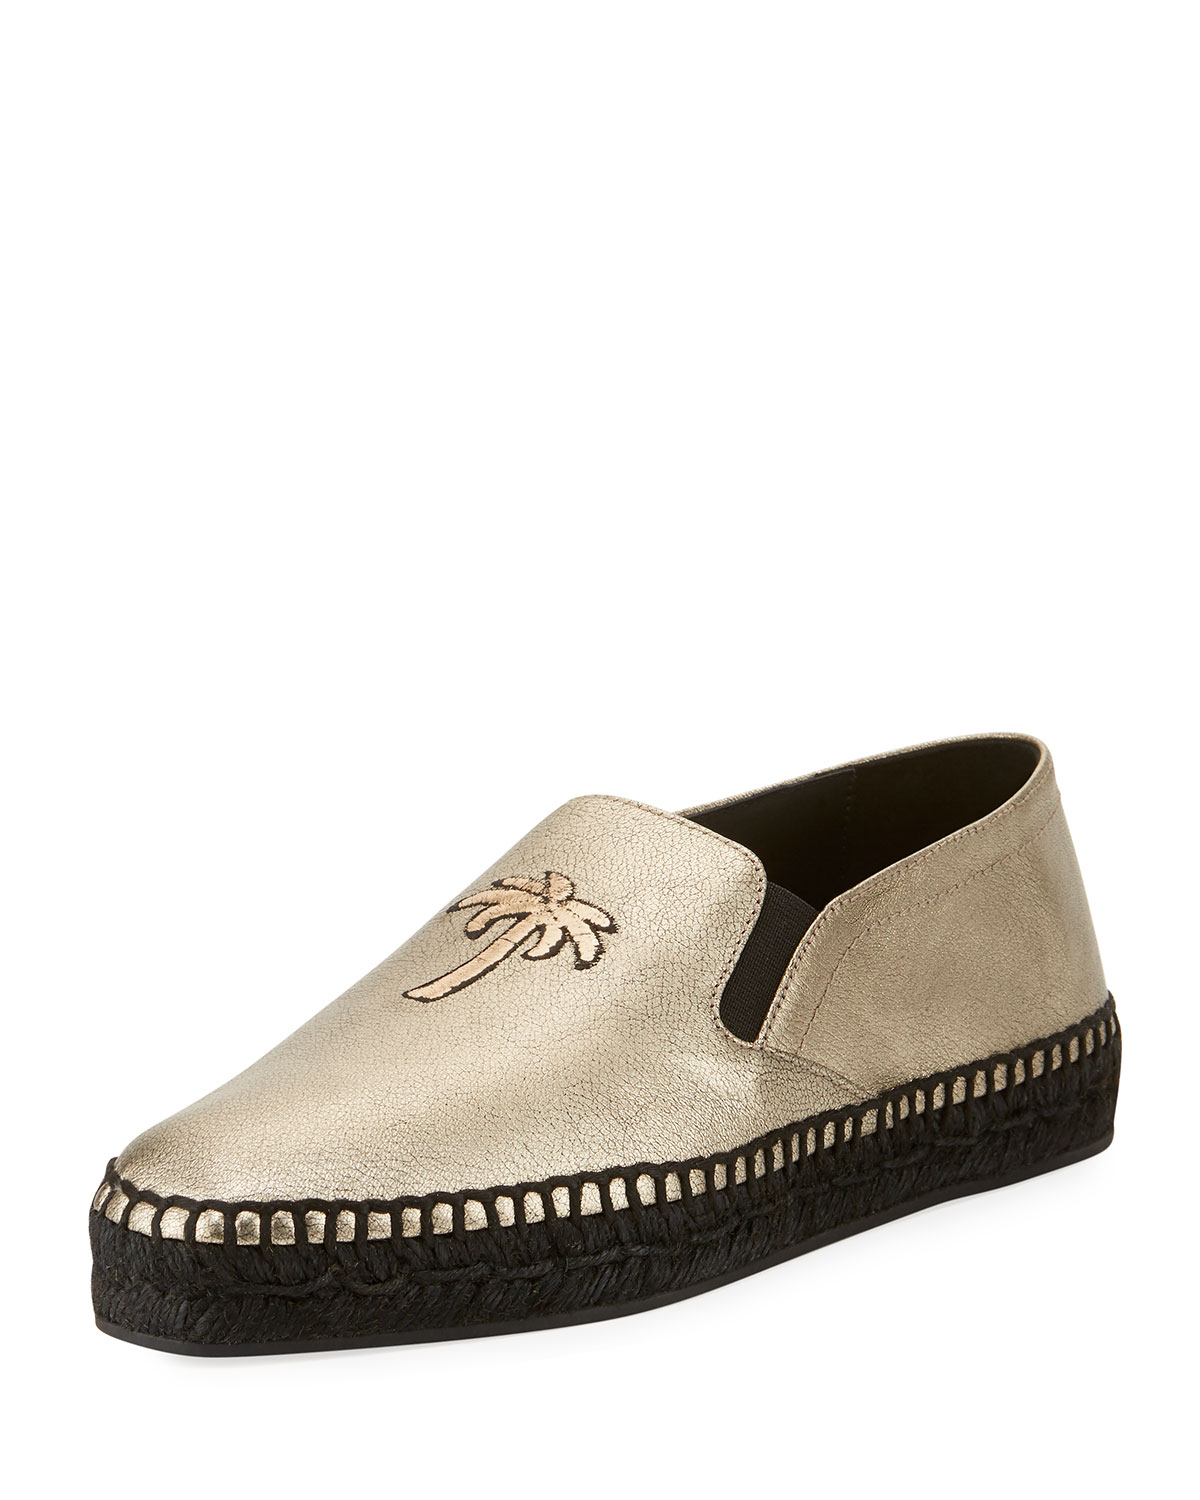 buy cheap how much outlet store cheap online Tomas Maier Metallic Palm Tree Espadrilles 4Lcdl